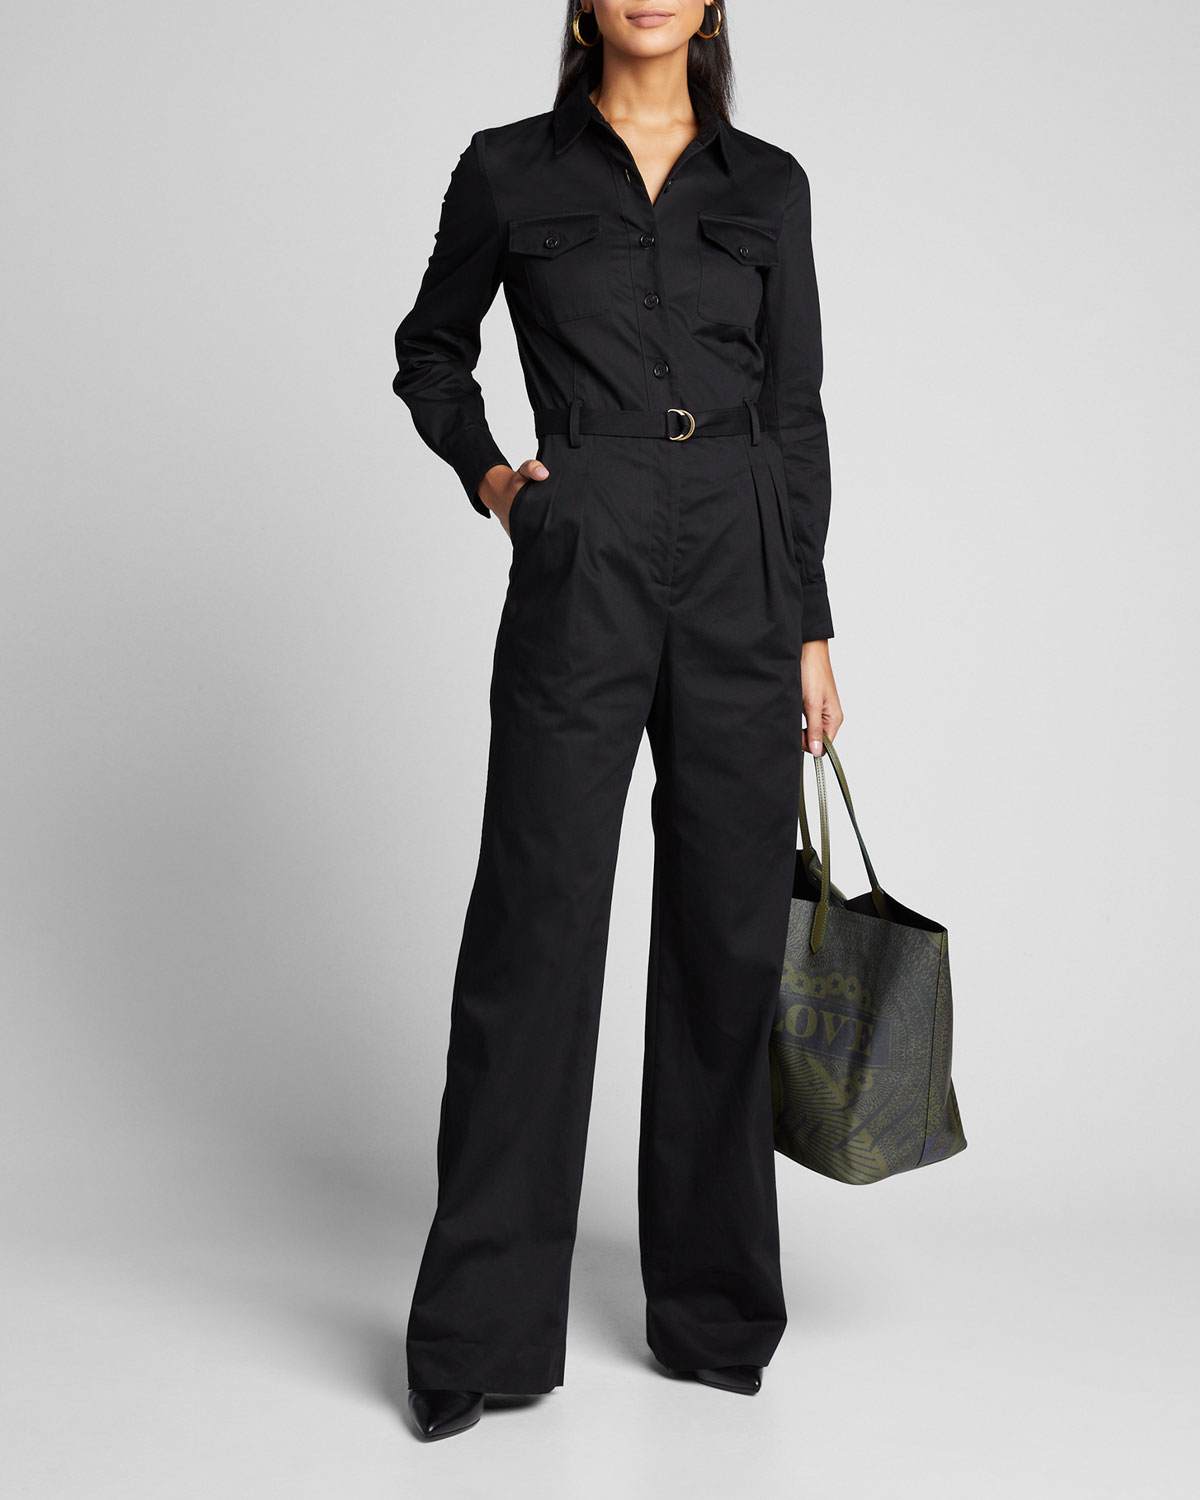 Nili Lotan Suits JOSIE BELTED COTTON JUMPSUIT